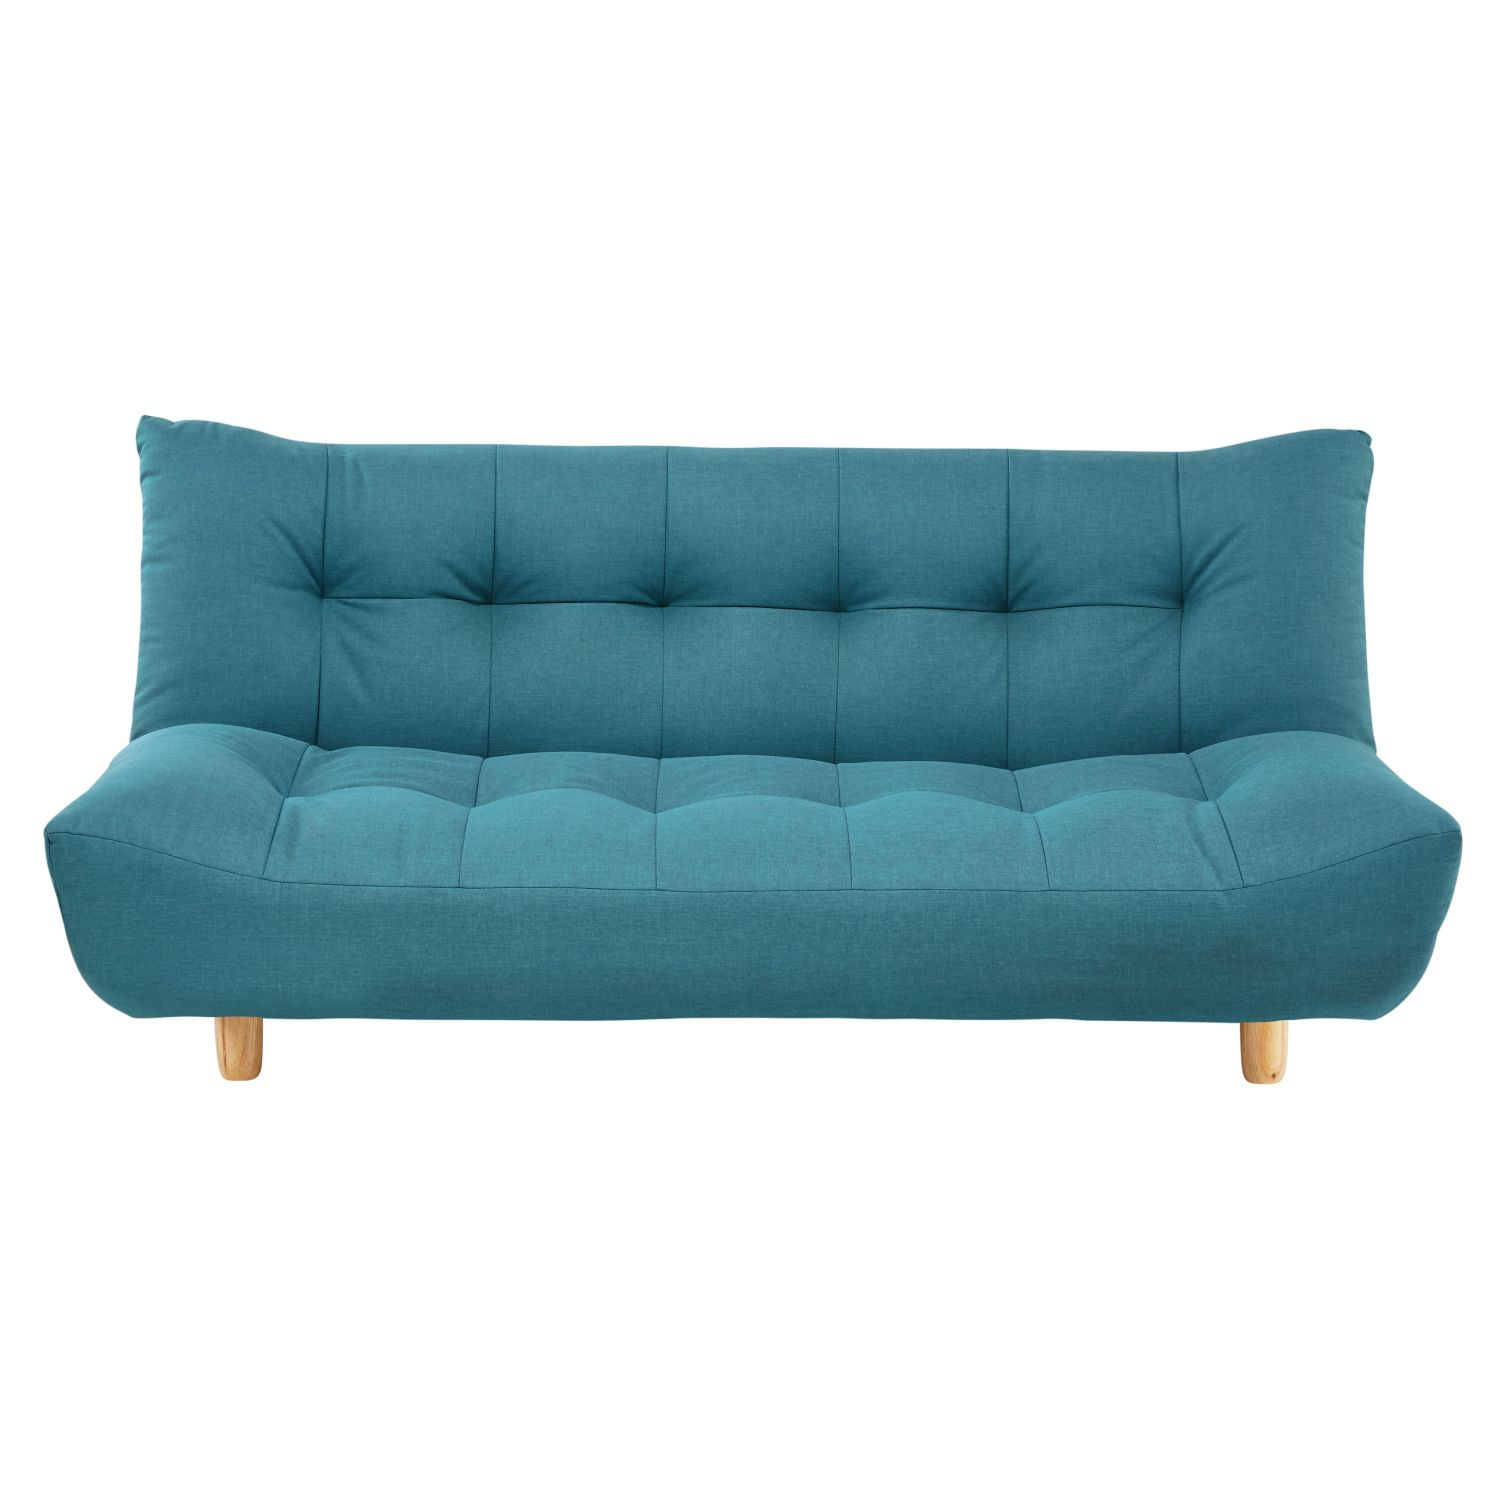 clic clac sofa bed large double deep sectional 3 seater in turquoise blue maisons du